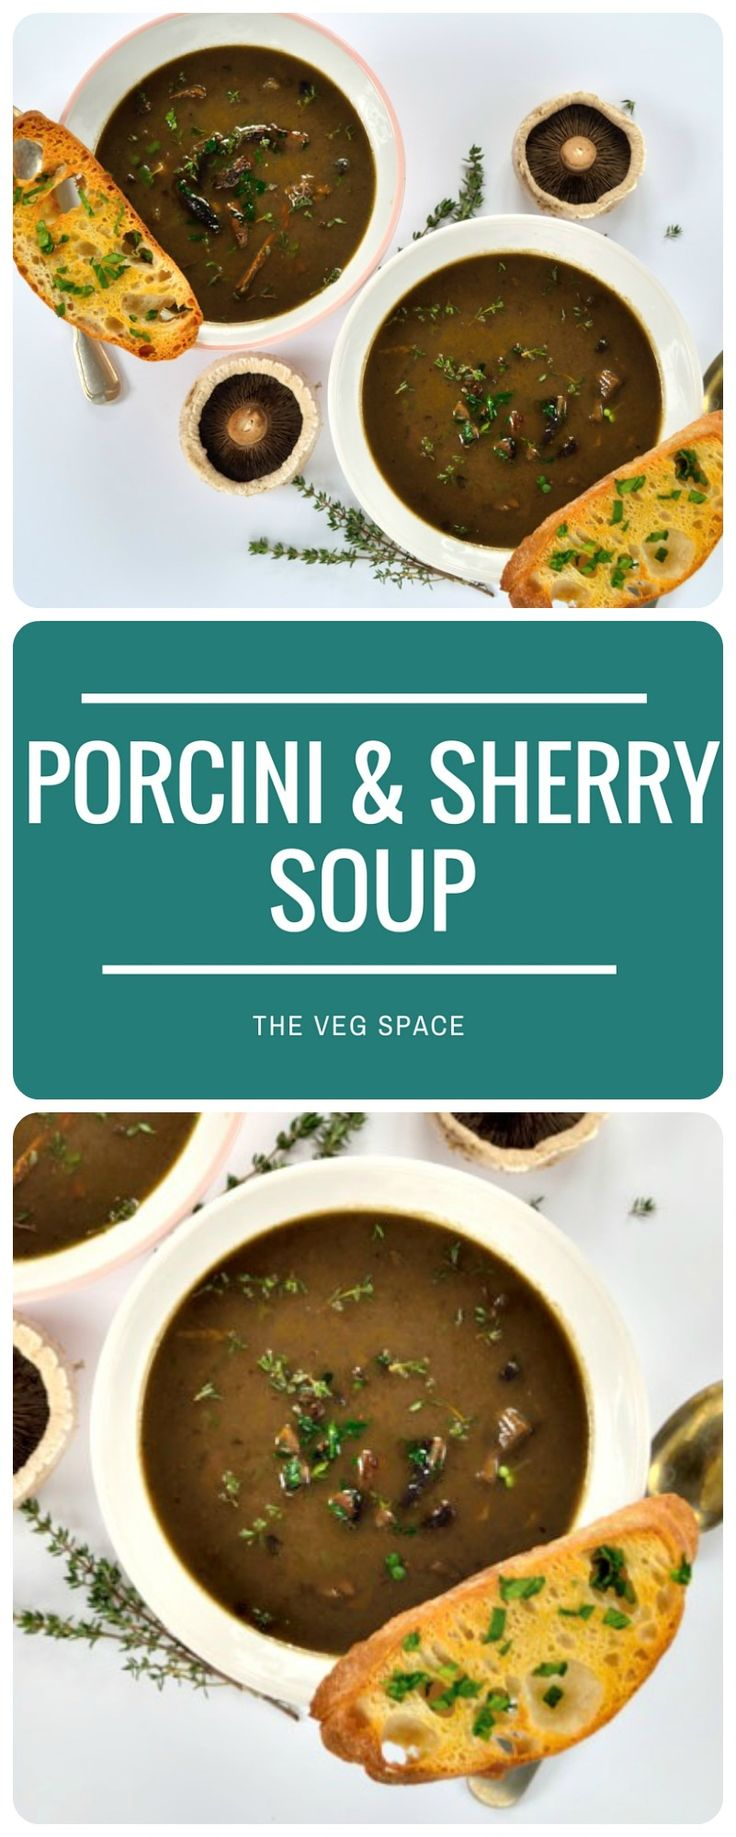 This autumnal and earthy Porcini Mushroom & Sherry Soup is deep and rich, and can be a showstopper dinner party starter, or simple weeknight supper.